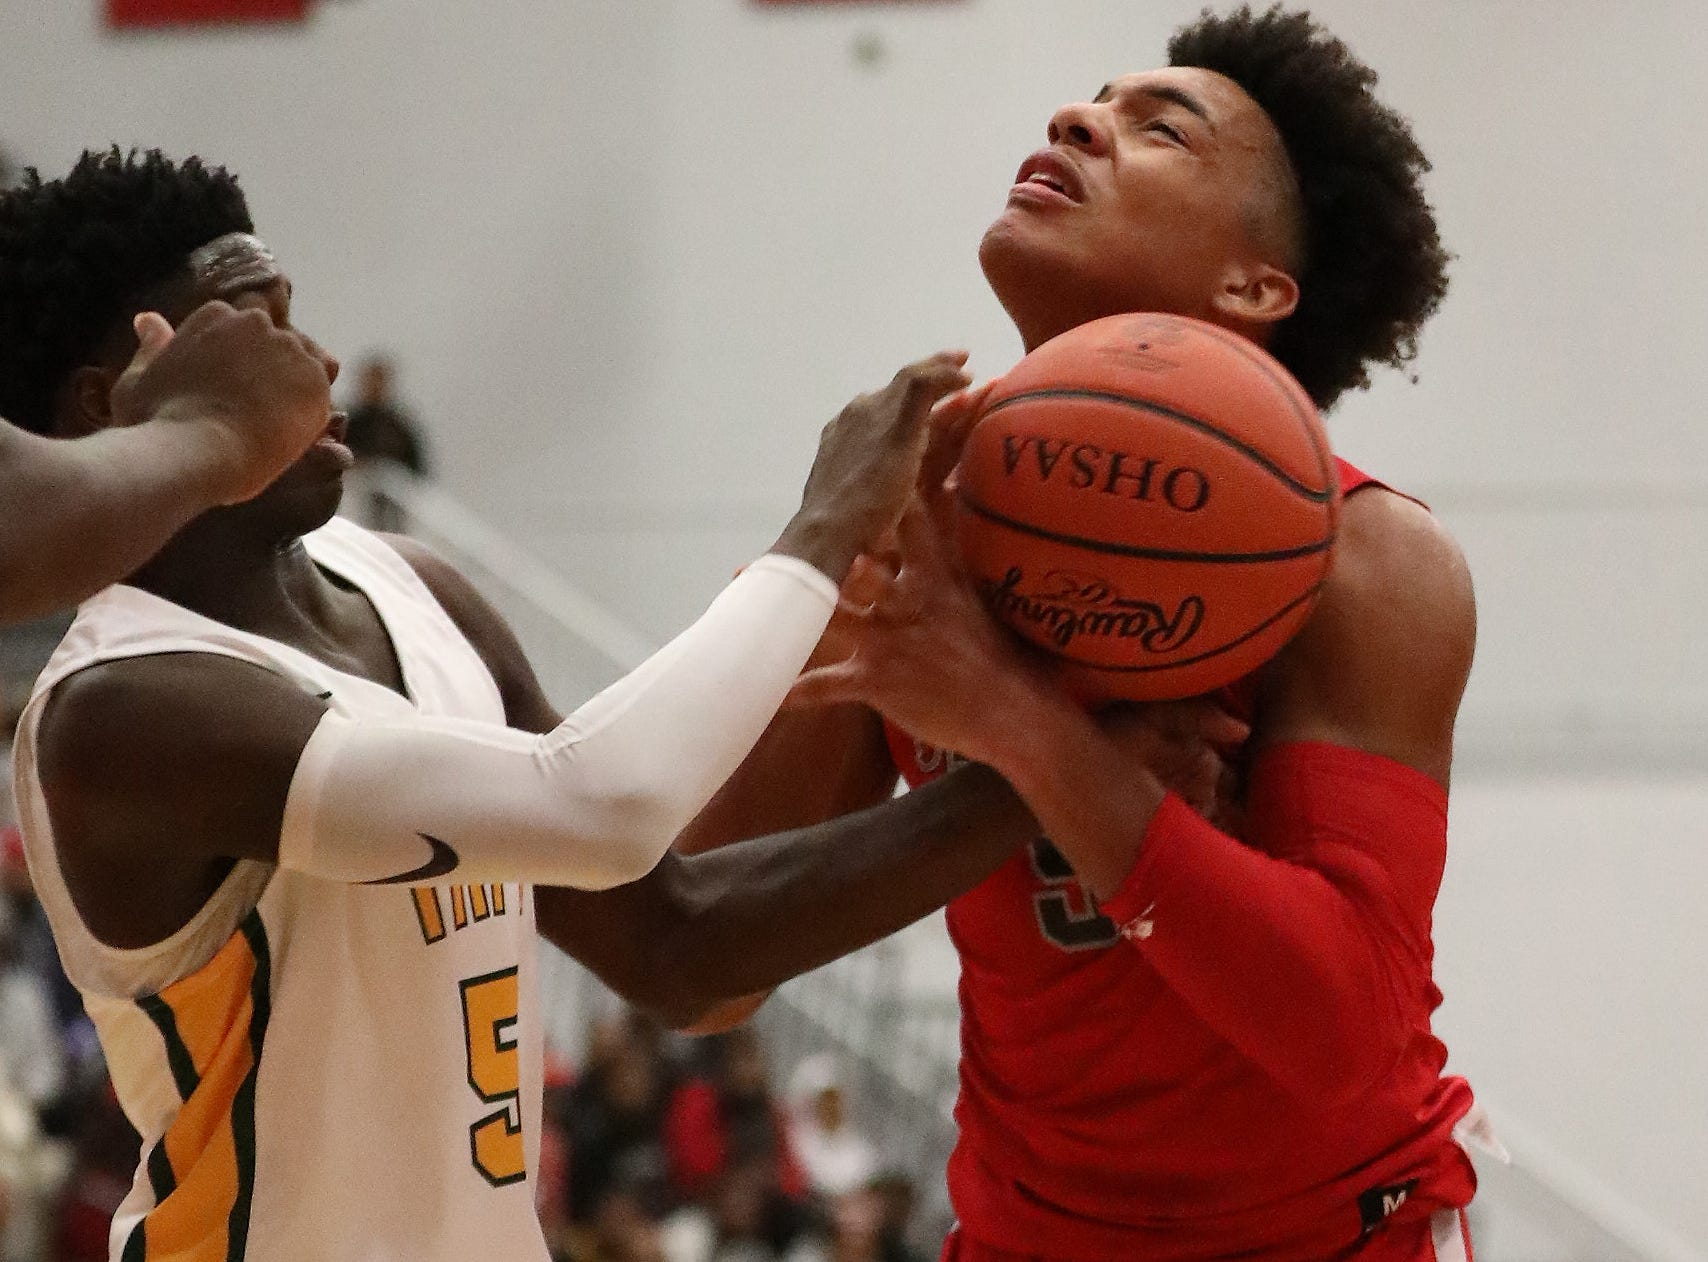 Deer Park guard Mark Wise, left, battles  Taft guard Muhammad Metz for a rebound during their basketball game  Friday, Dec. 7, 2018.